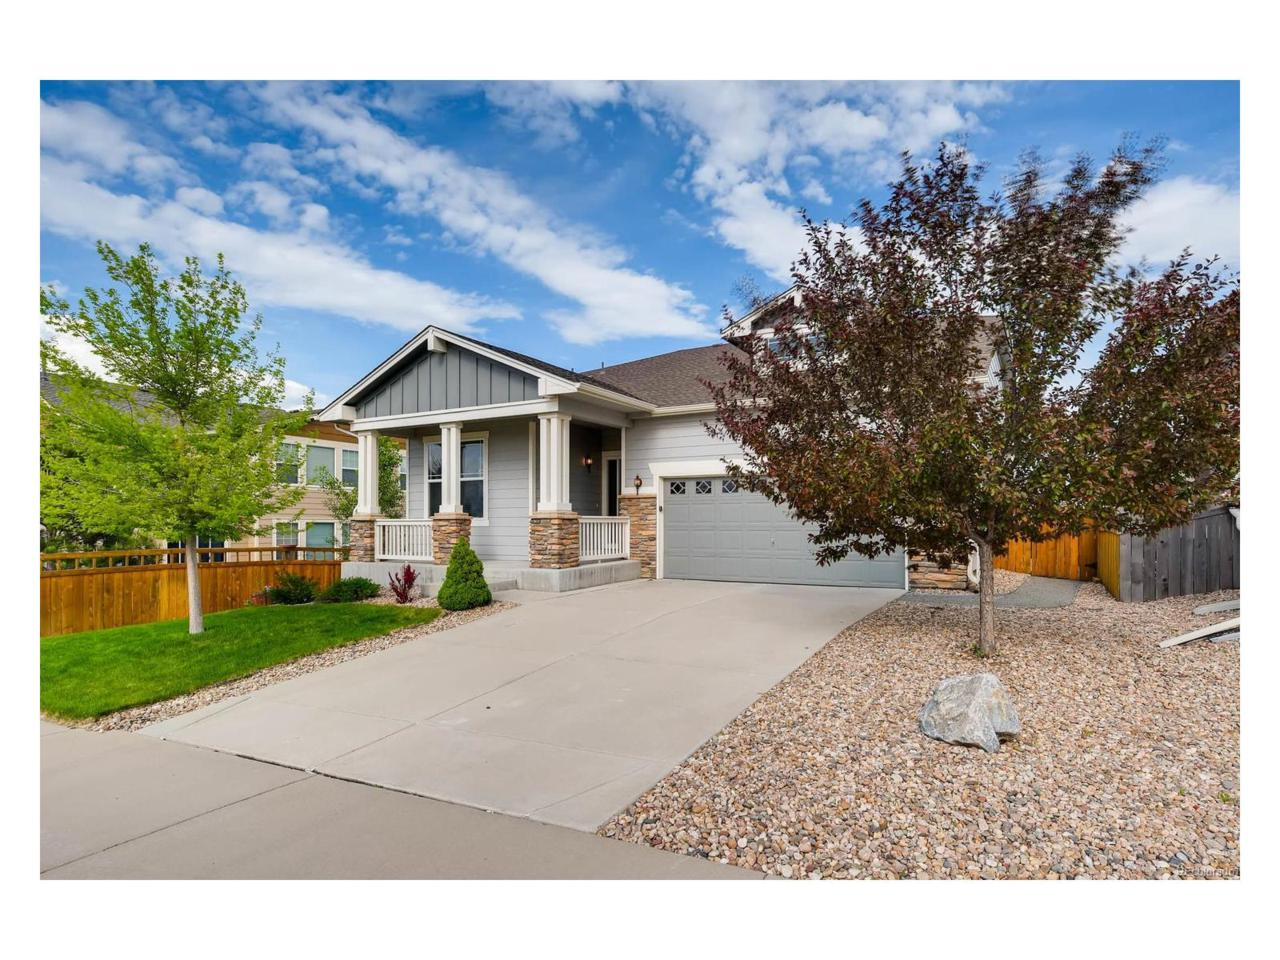 1446 Sky Rock Way, Castle Rock, CO 80109 (MLS #1604820) :: 8z Real Estate